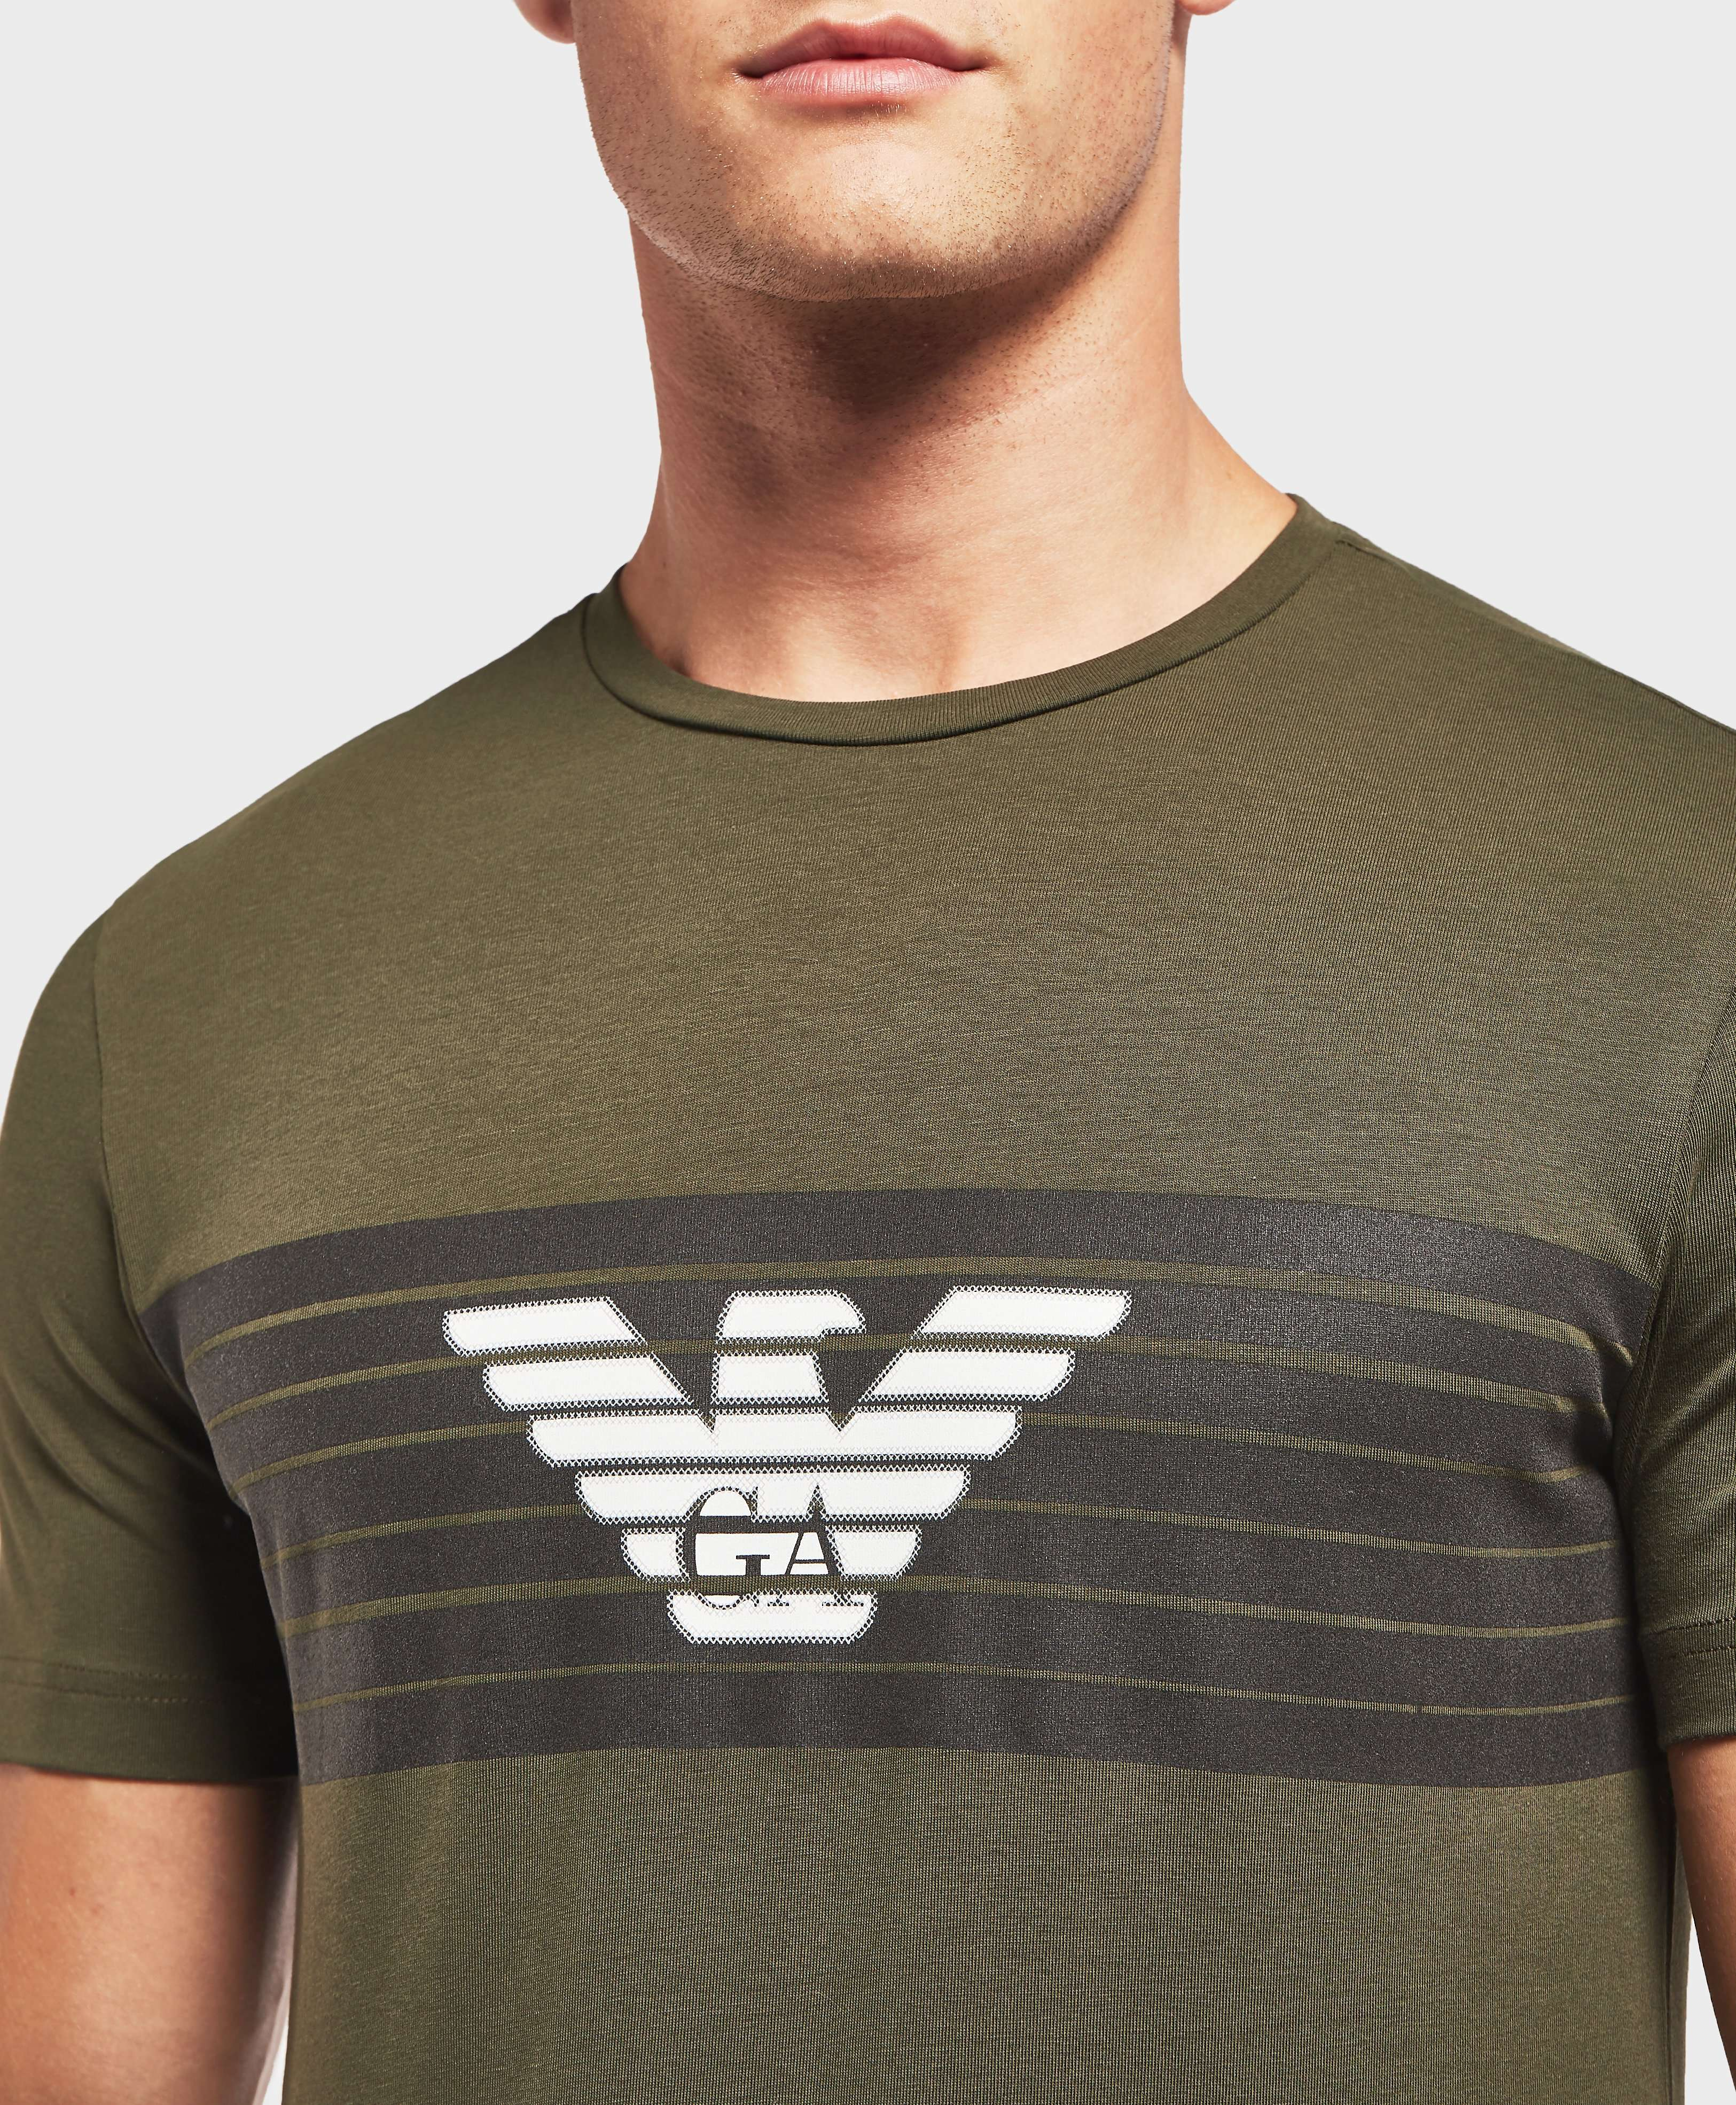 Emporio Armani EA7 Eagle Graphic Short Sleeve T-Shirt